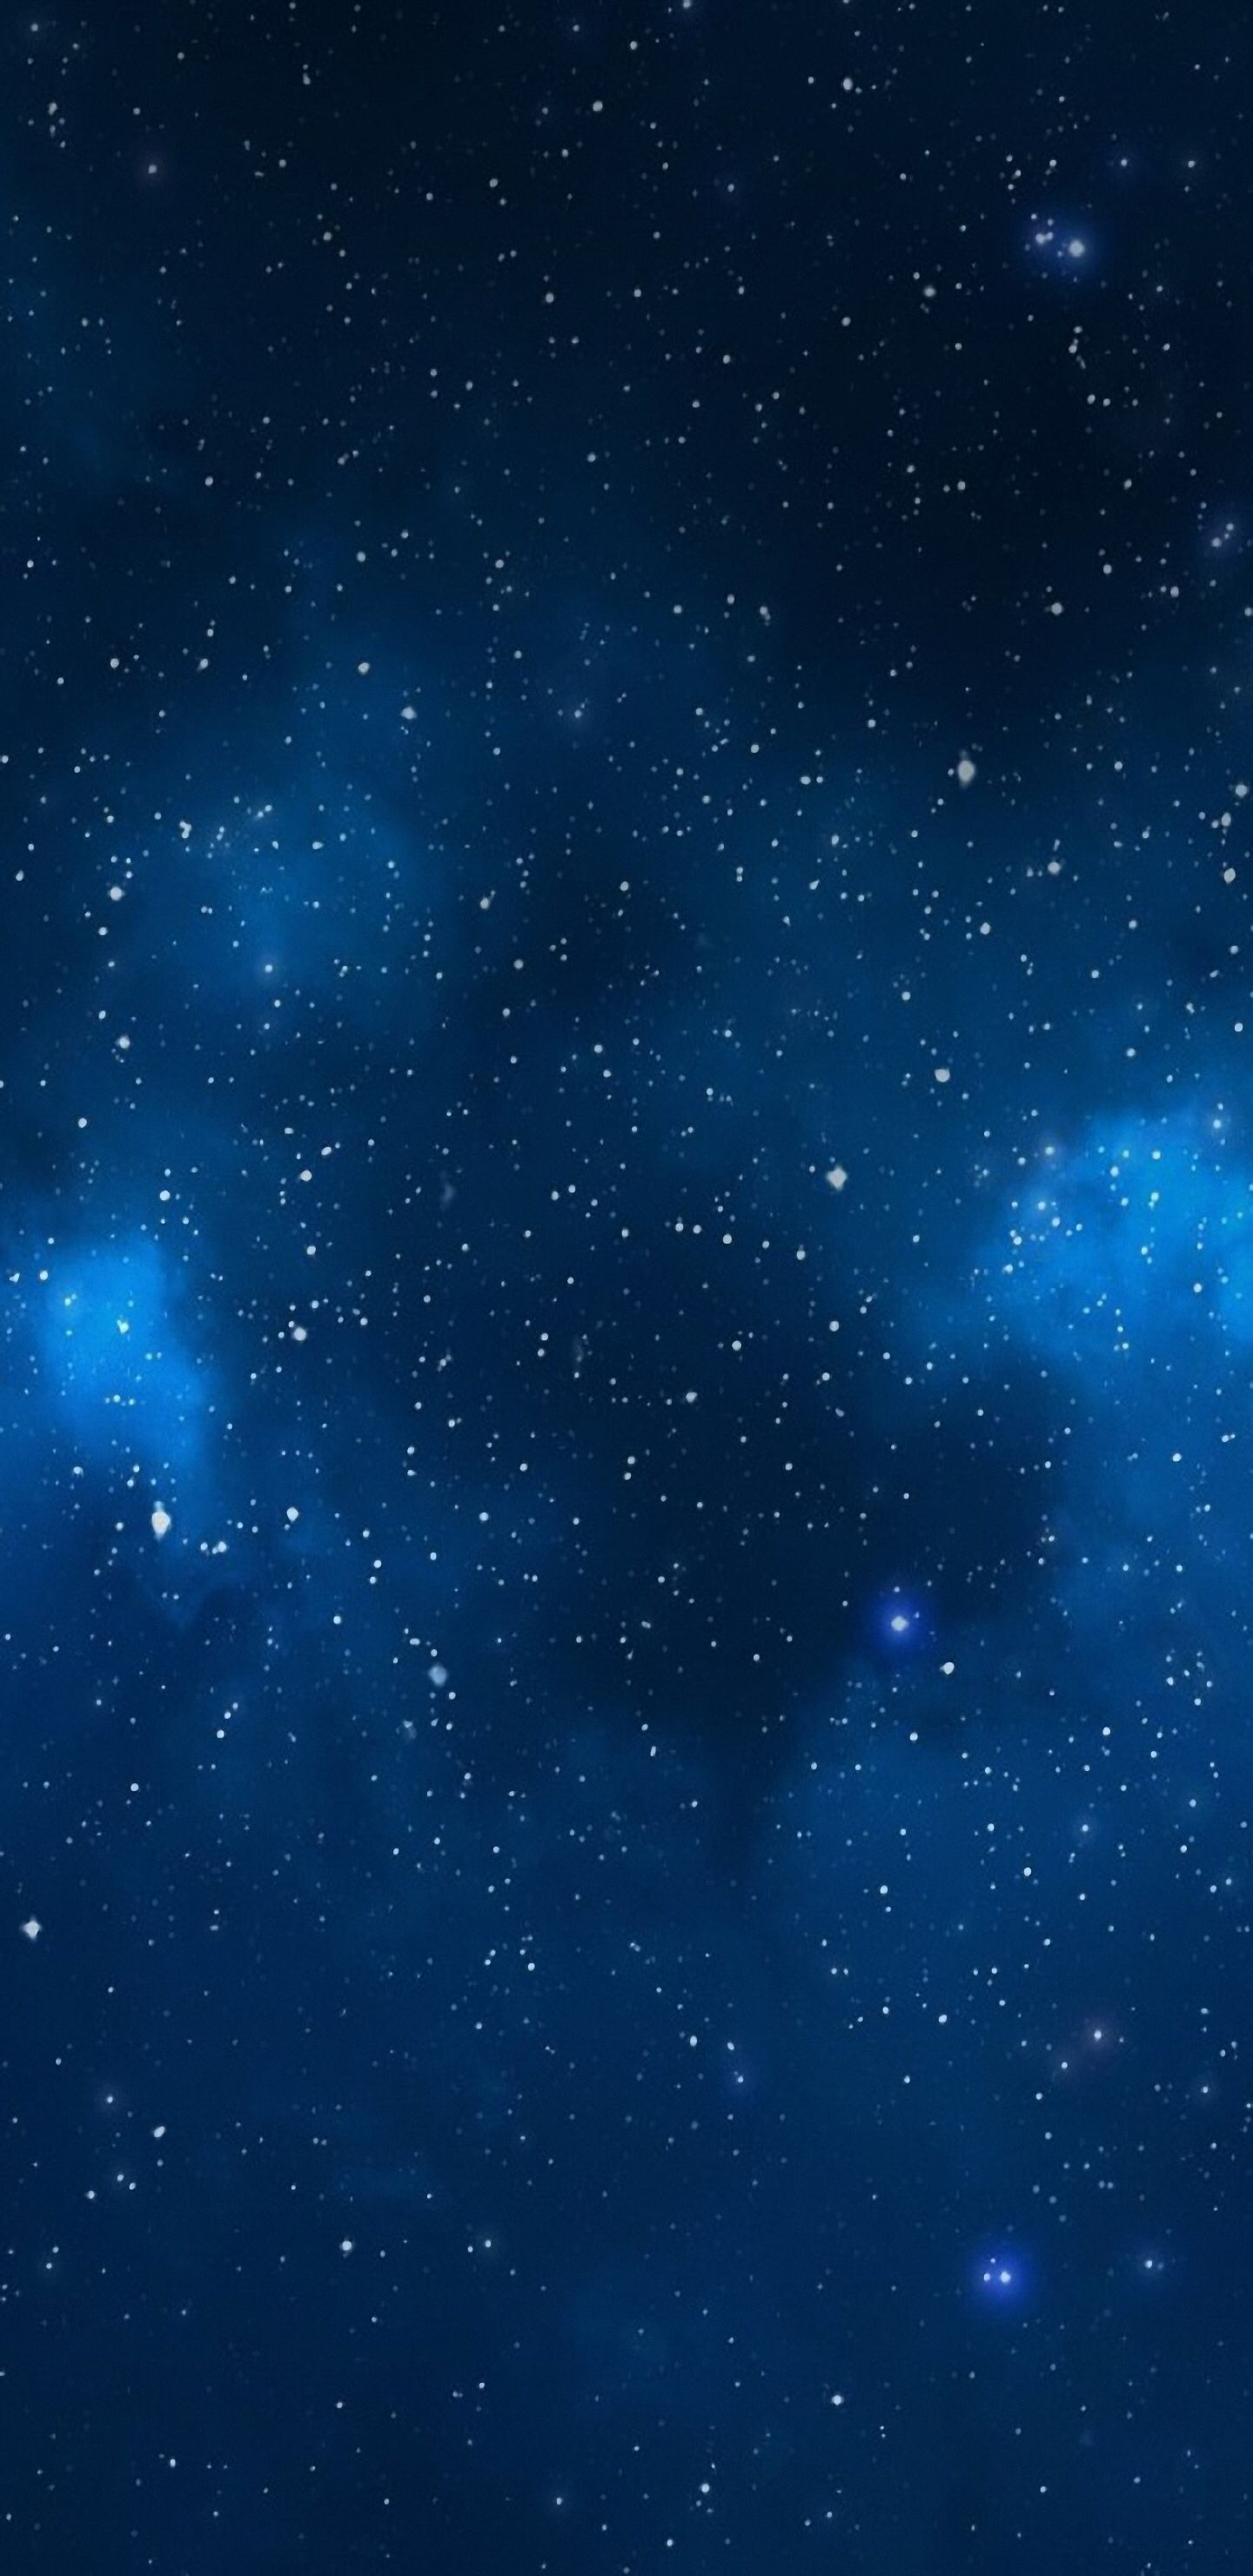 Dark Blue Wallpaper Galaxy Tranquil Beauty Nature Night Sky Stars Samsung Blue Background Wallpapers Blue Galaxy Wallpaper Dark Blue Wallpaper